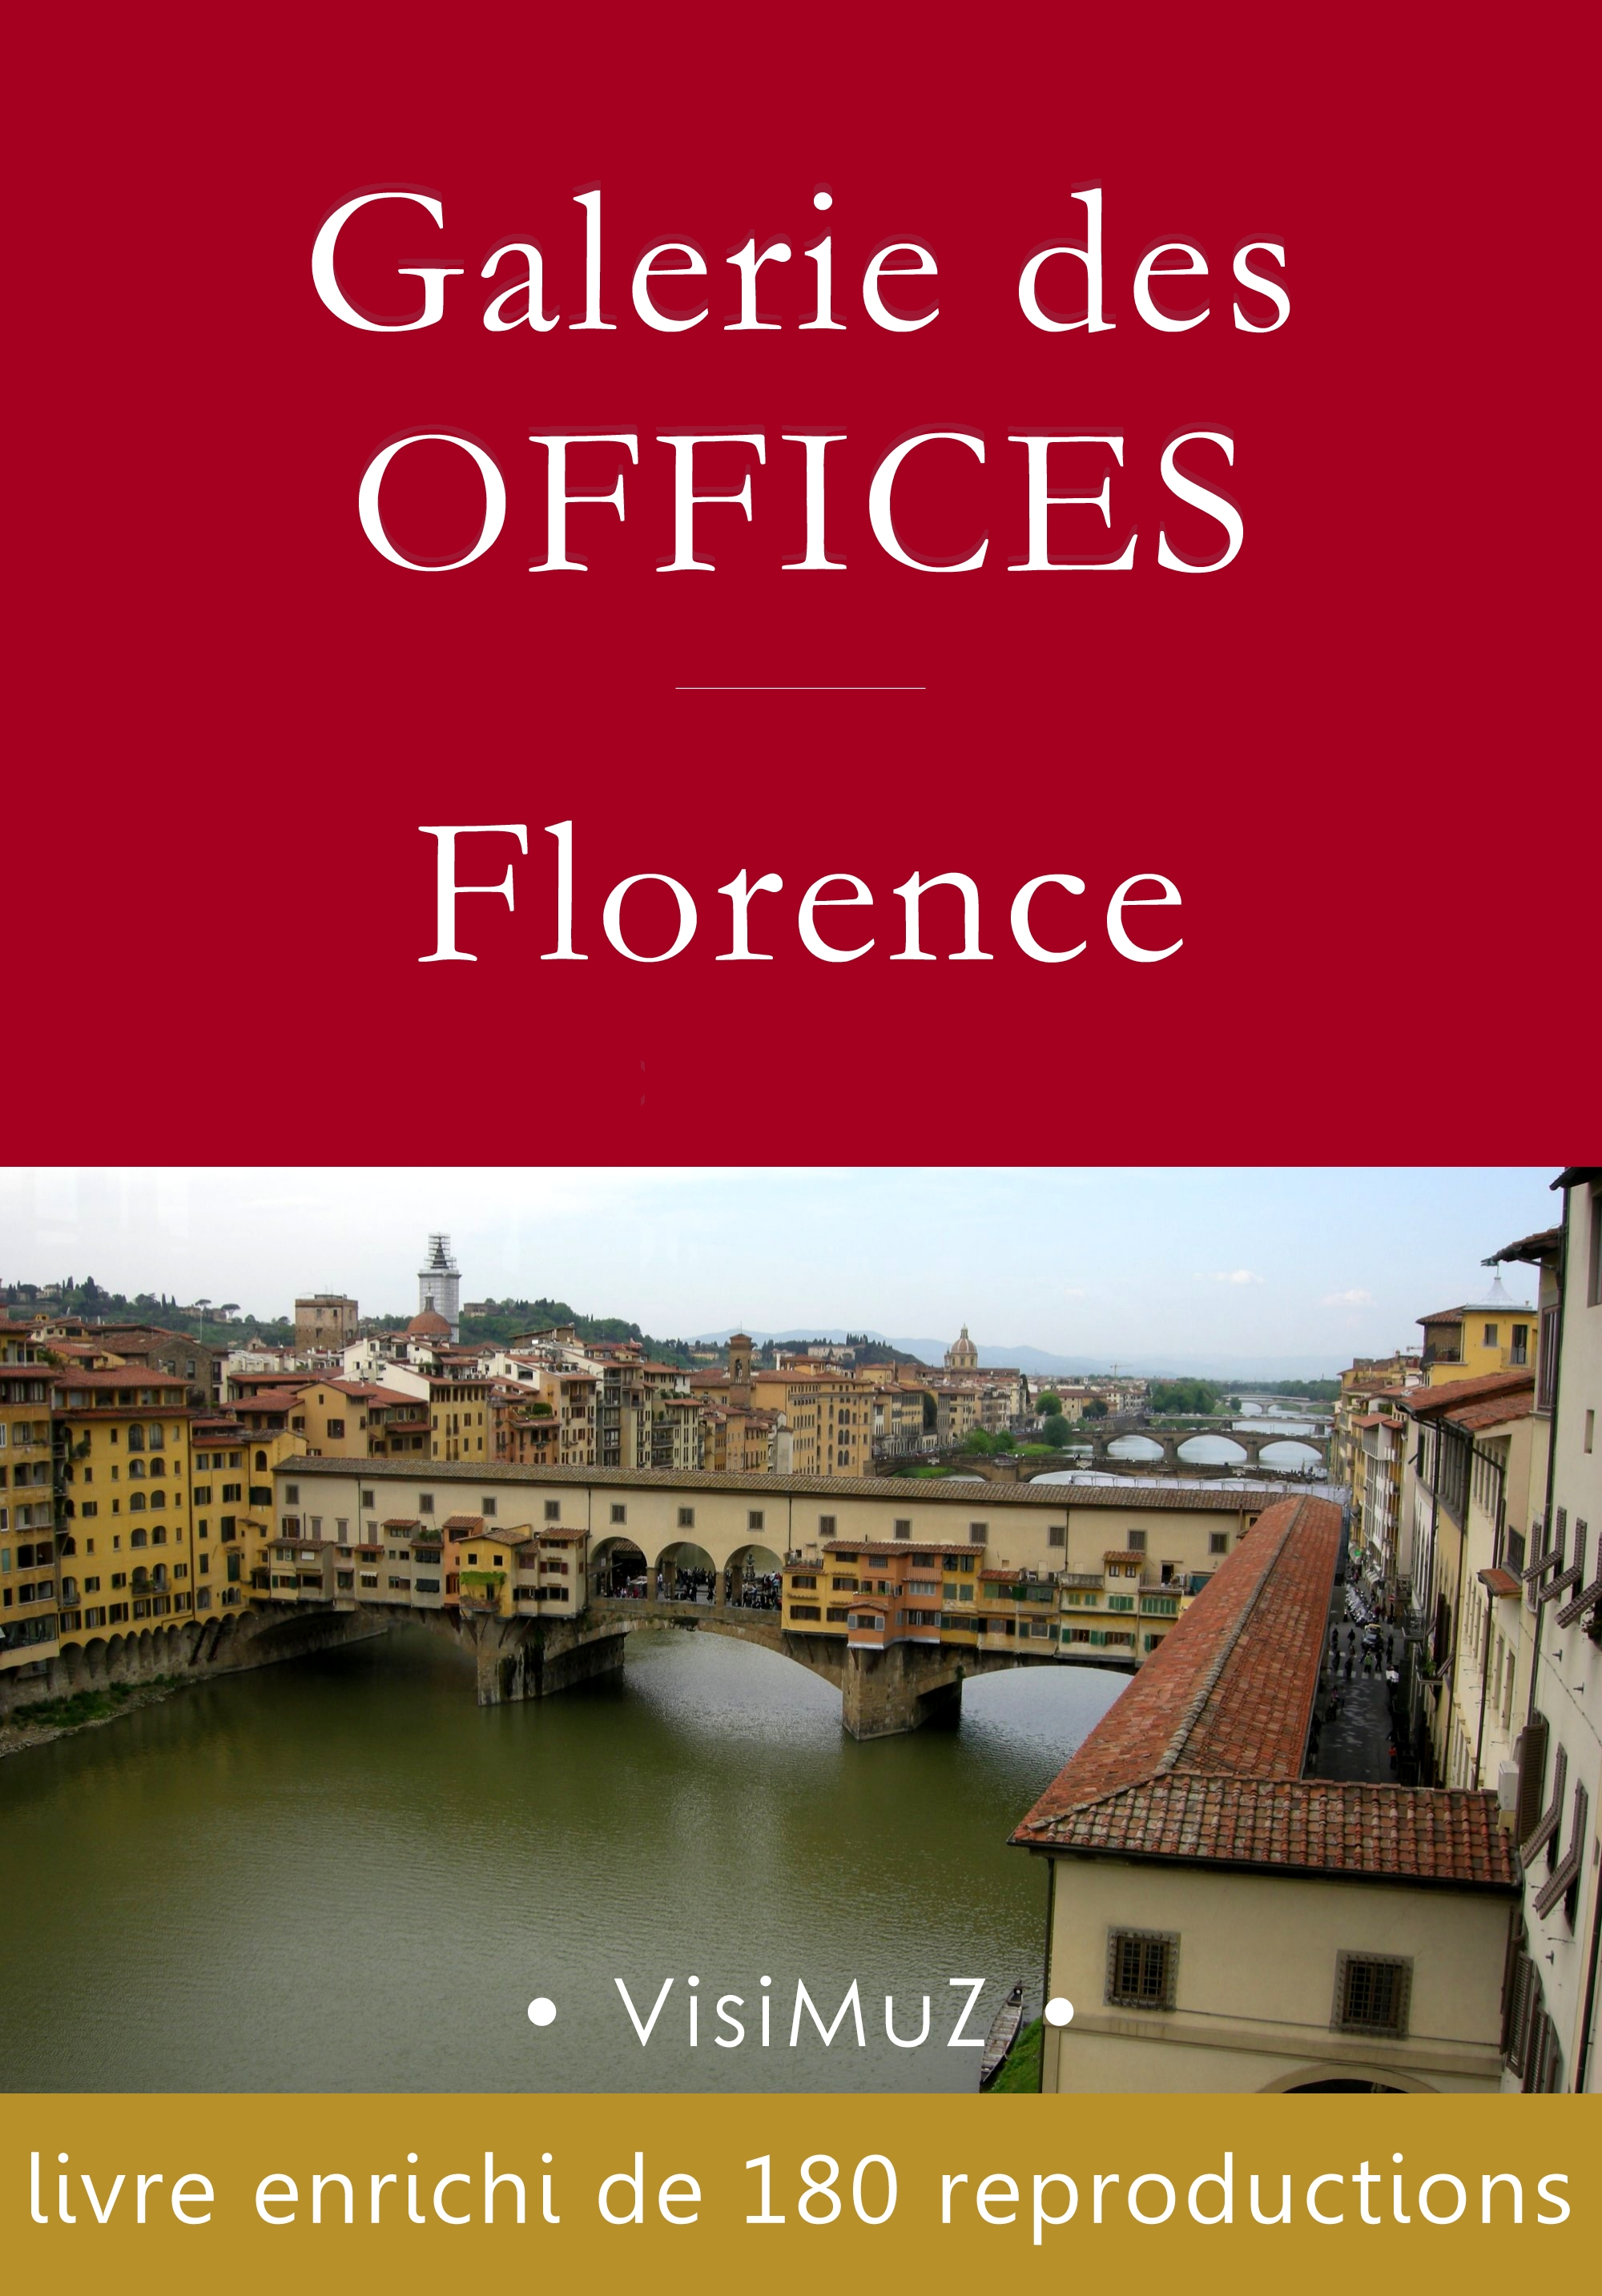 Ebook galerie des offices florence 7switch - Musee des offices florence visite virtuelle ...